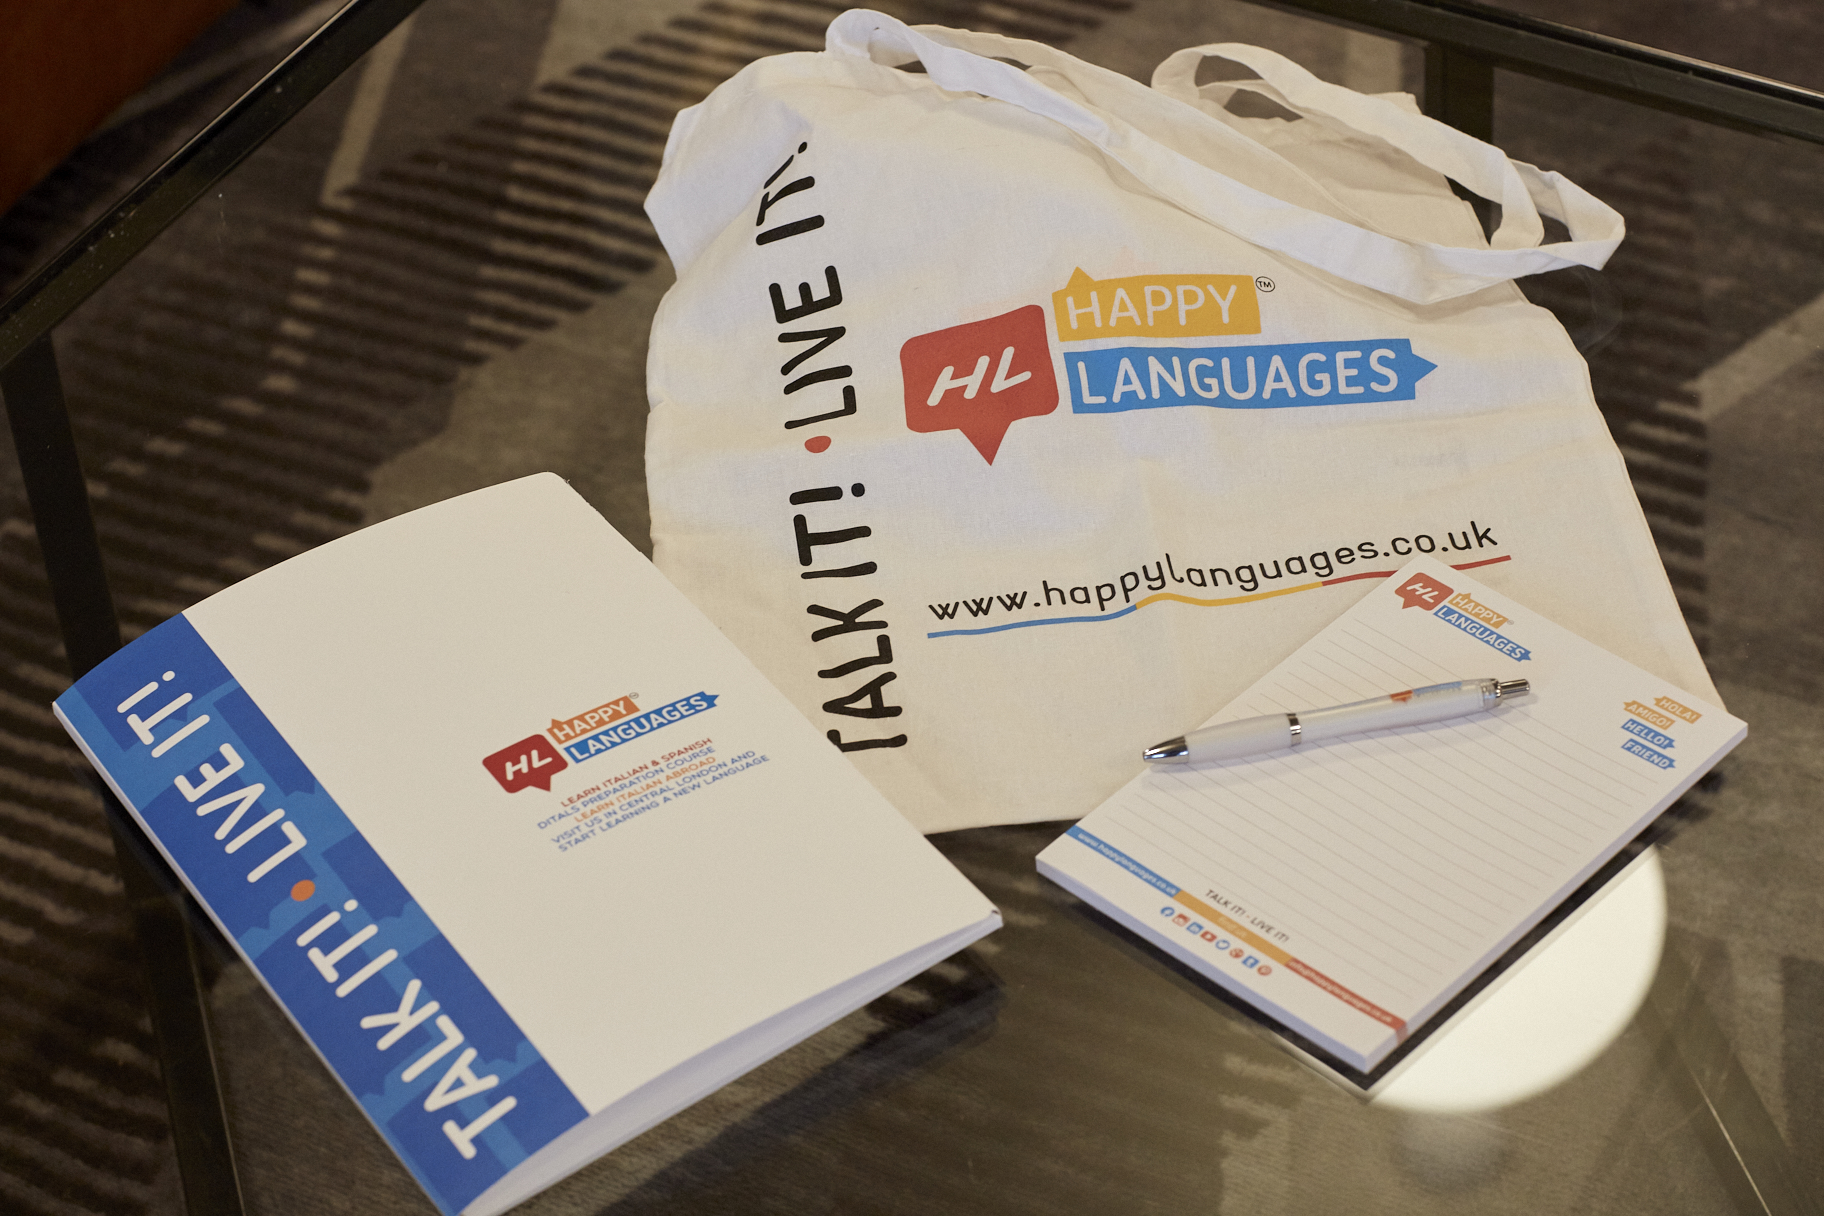 happy languages gadgets